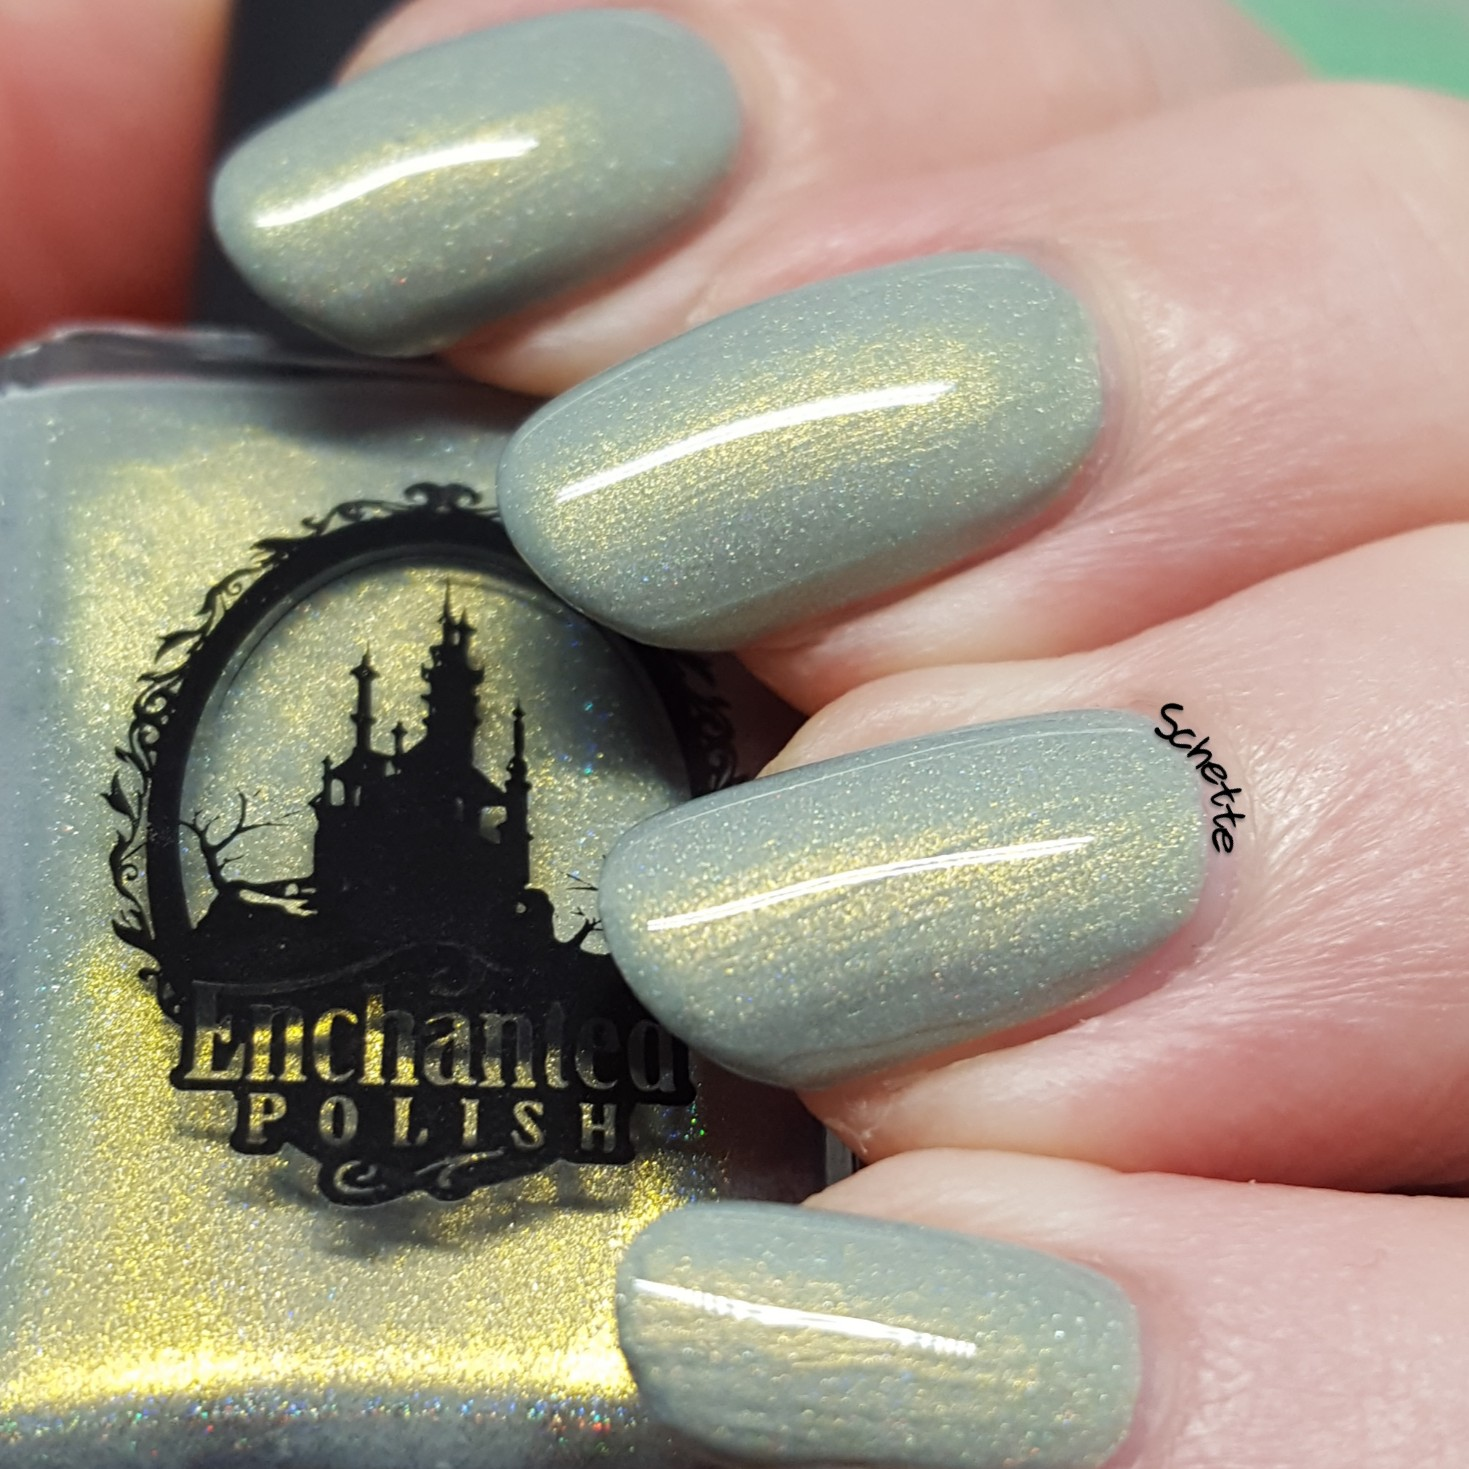 Enchanted Polish - June 2018